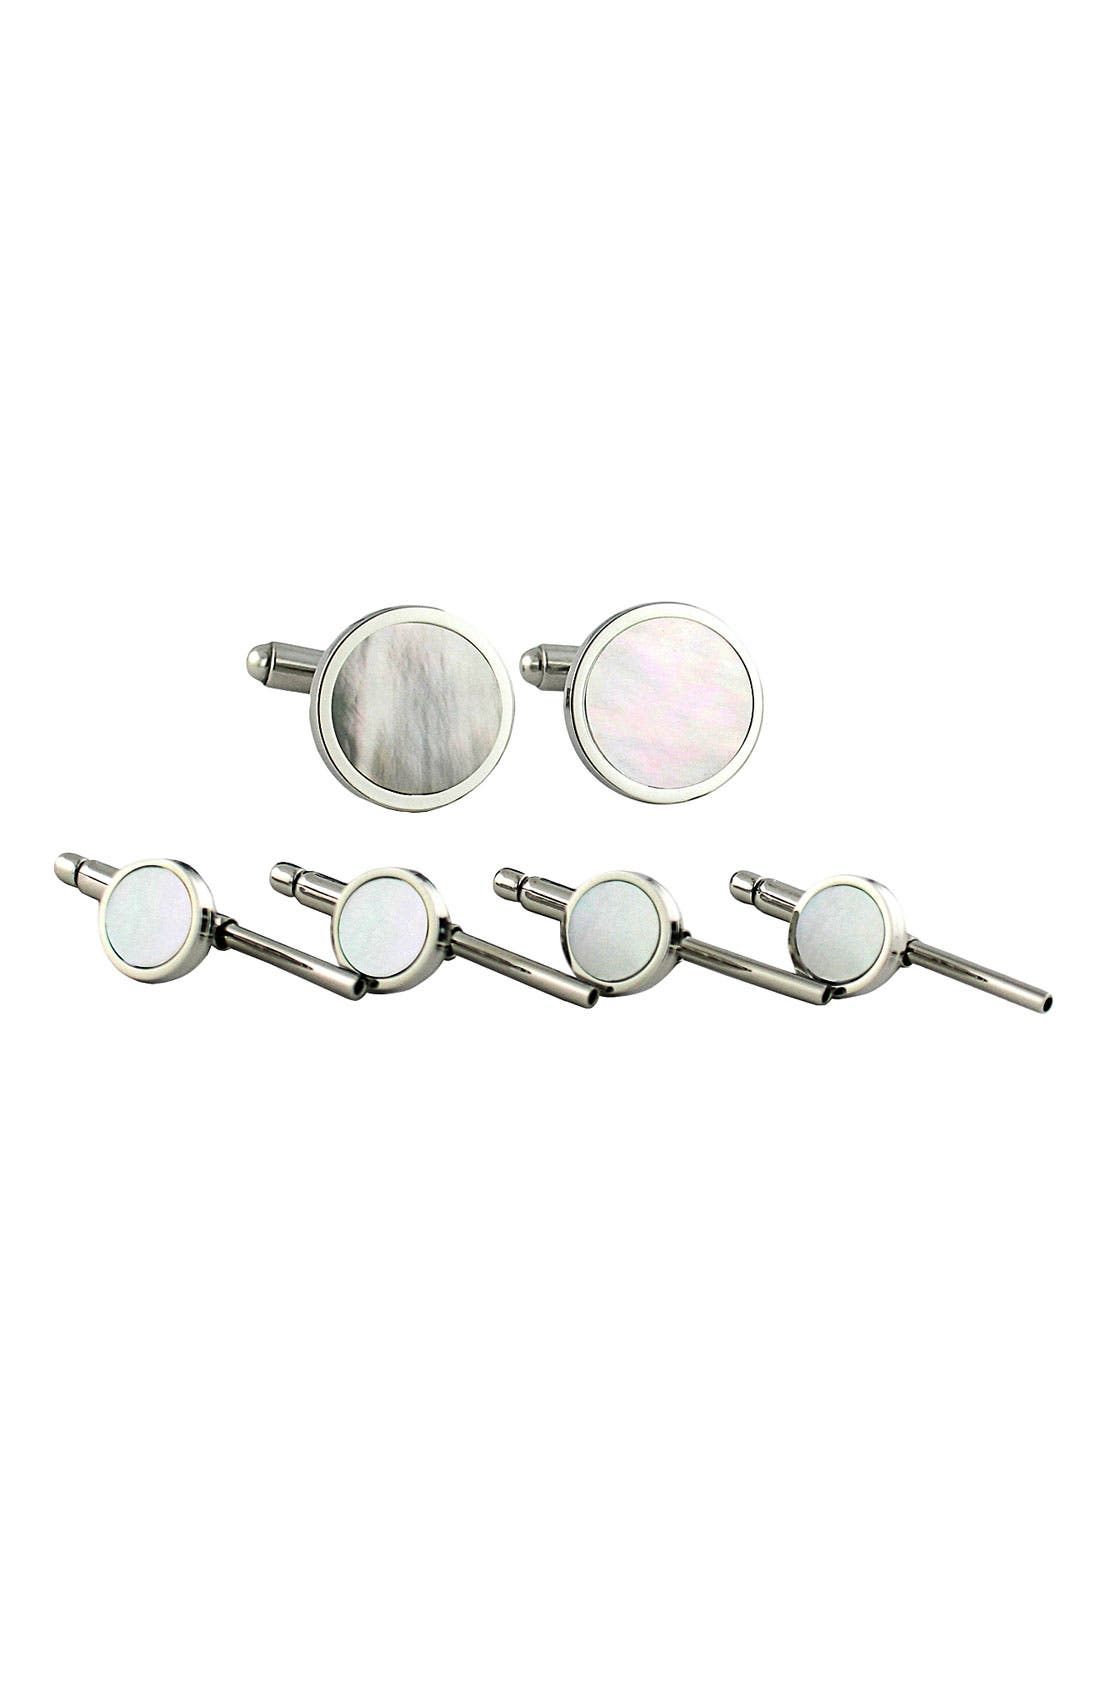 Mother-of-Pearl Cuff Link & Stud Set,                         Main,                         color, Silver M.O.P Stud Set